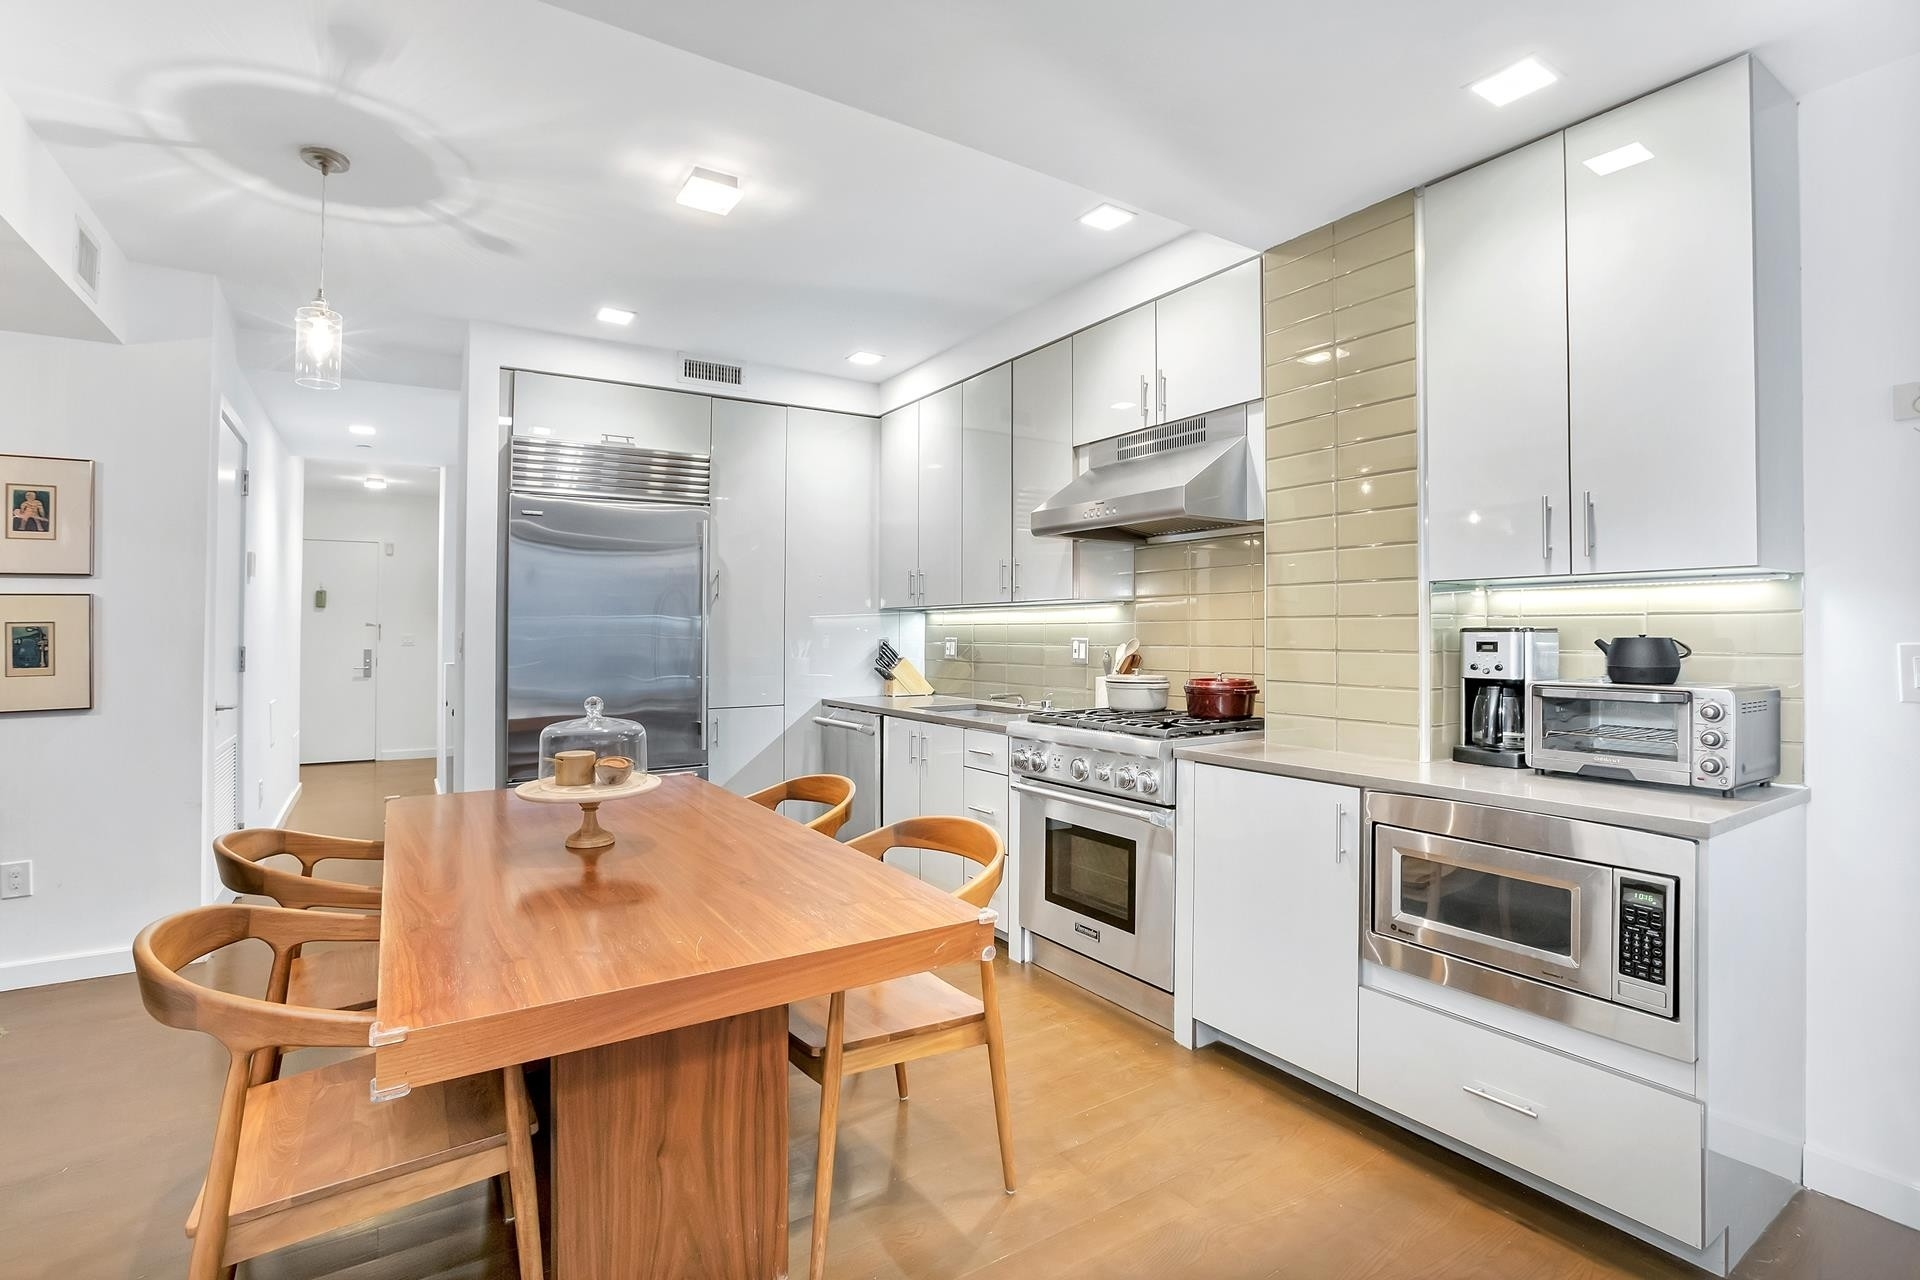 Property at Modern 19, 138 West 19th St, 1 Chelsea, New York, NY 10011